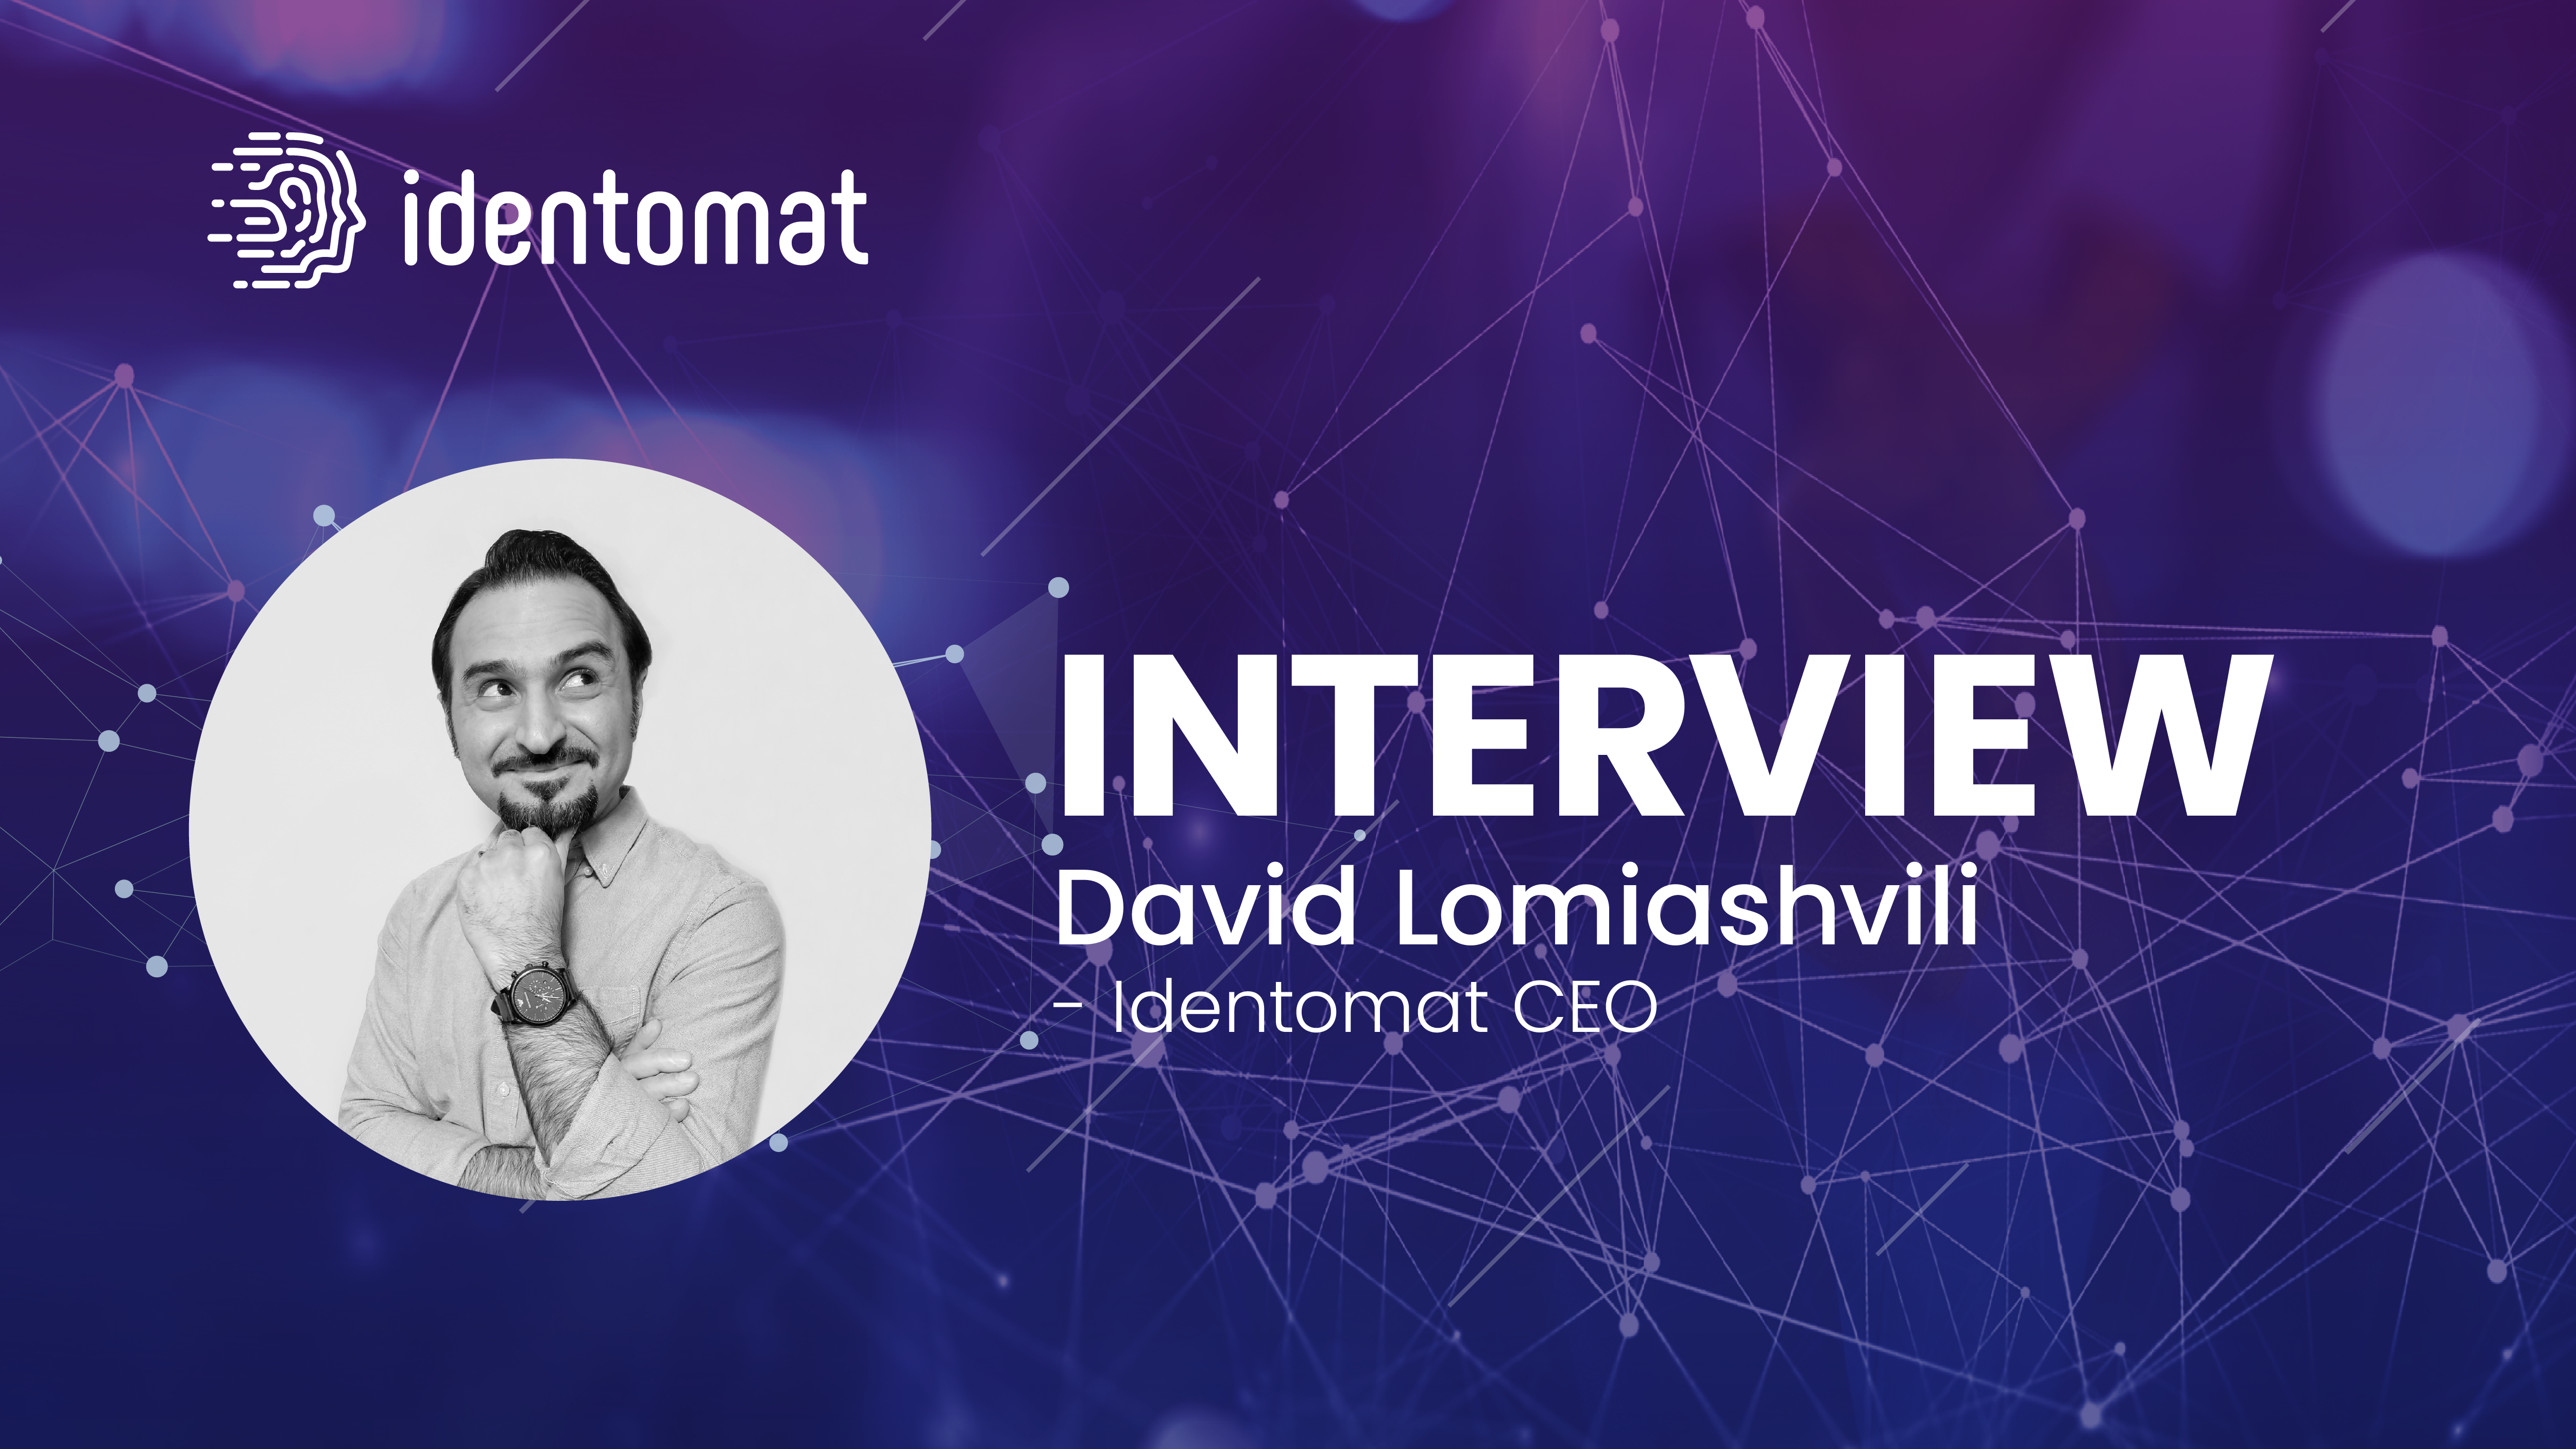 Identomat CEO David Lomiashvili: Investors are Hungry for Enterprise-Level Application of AI